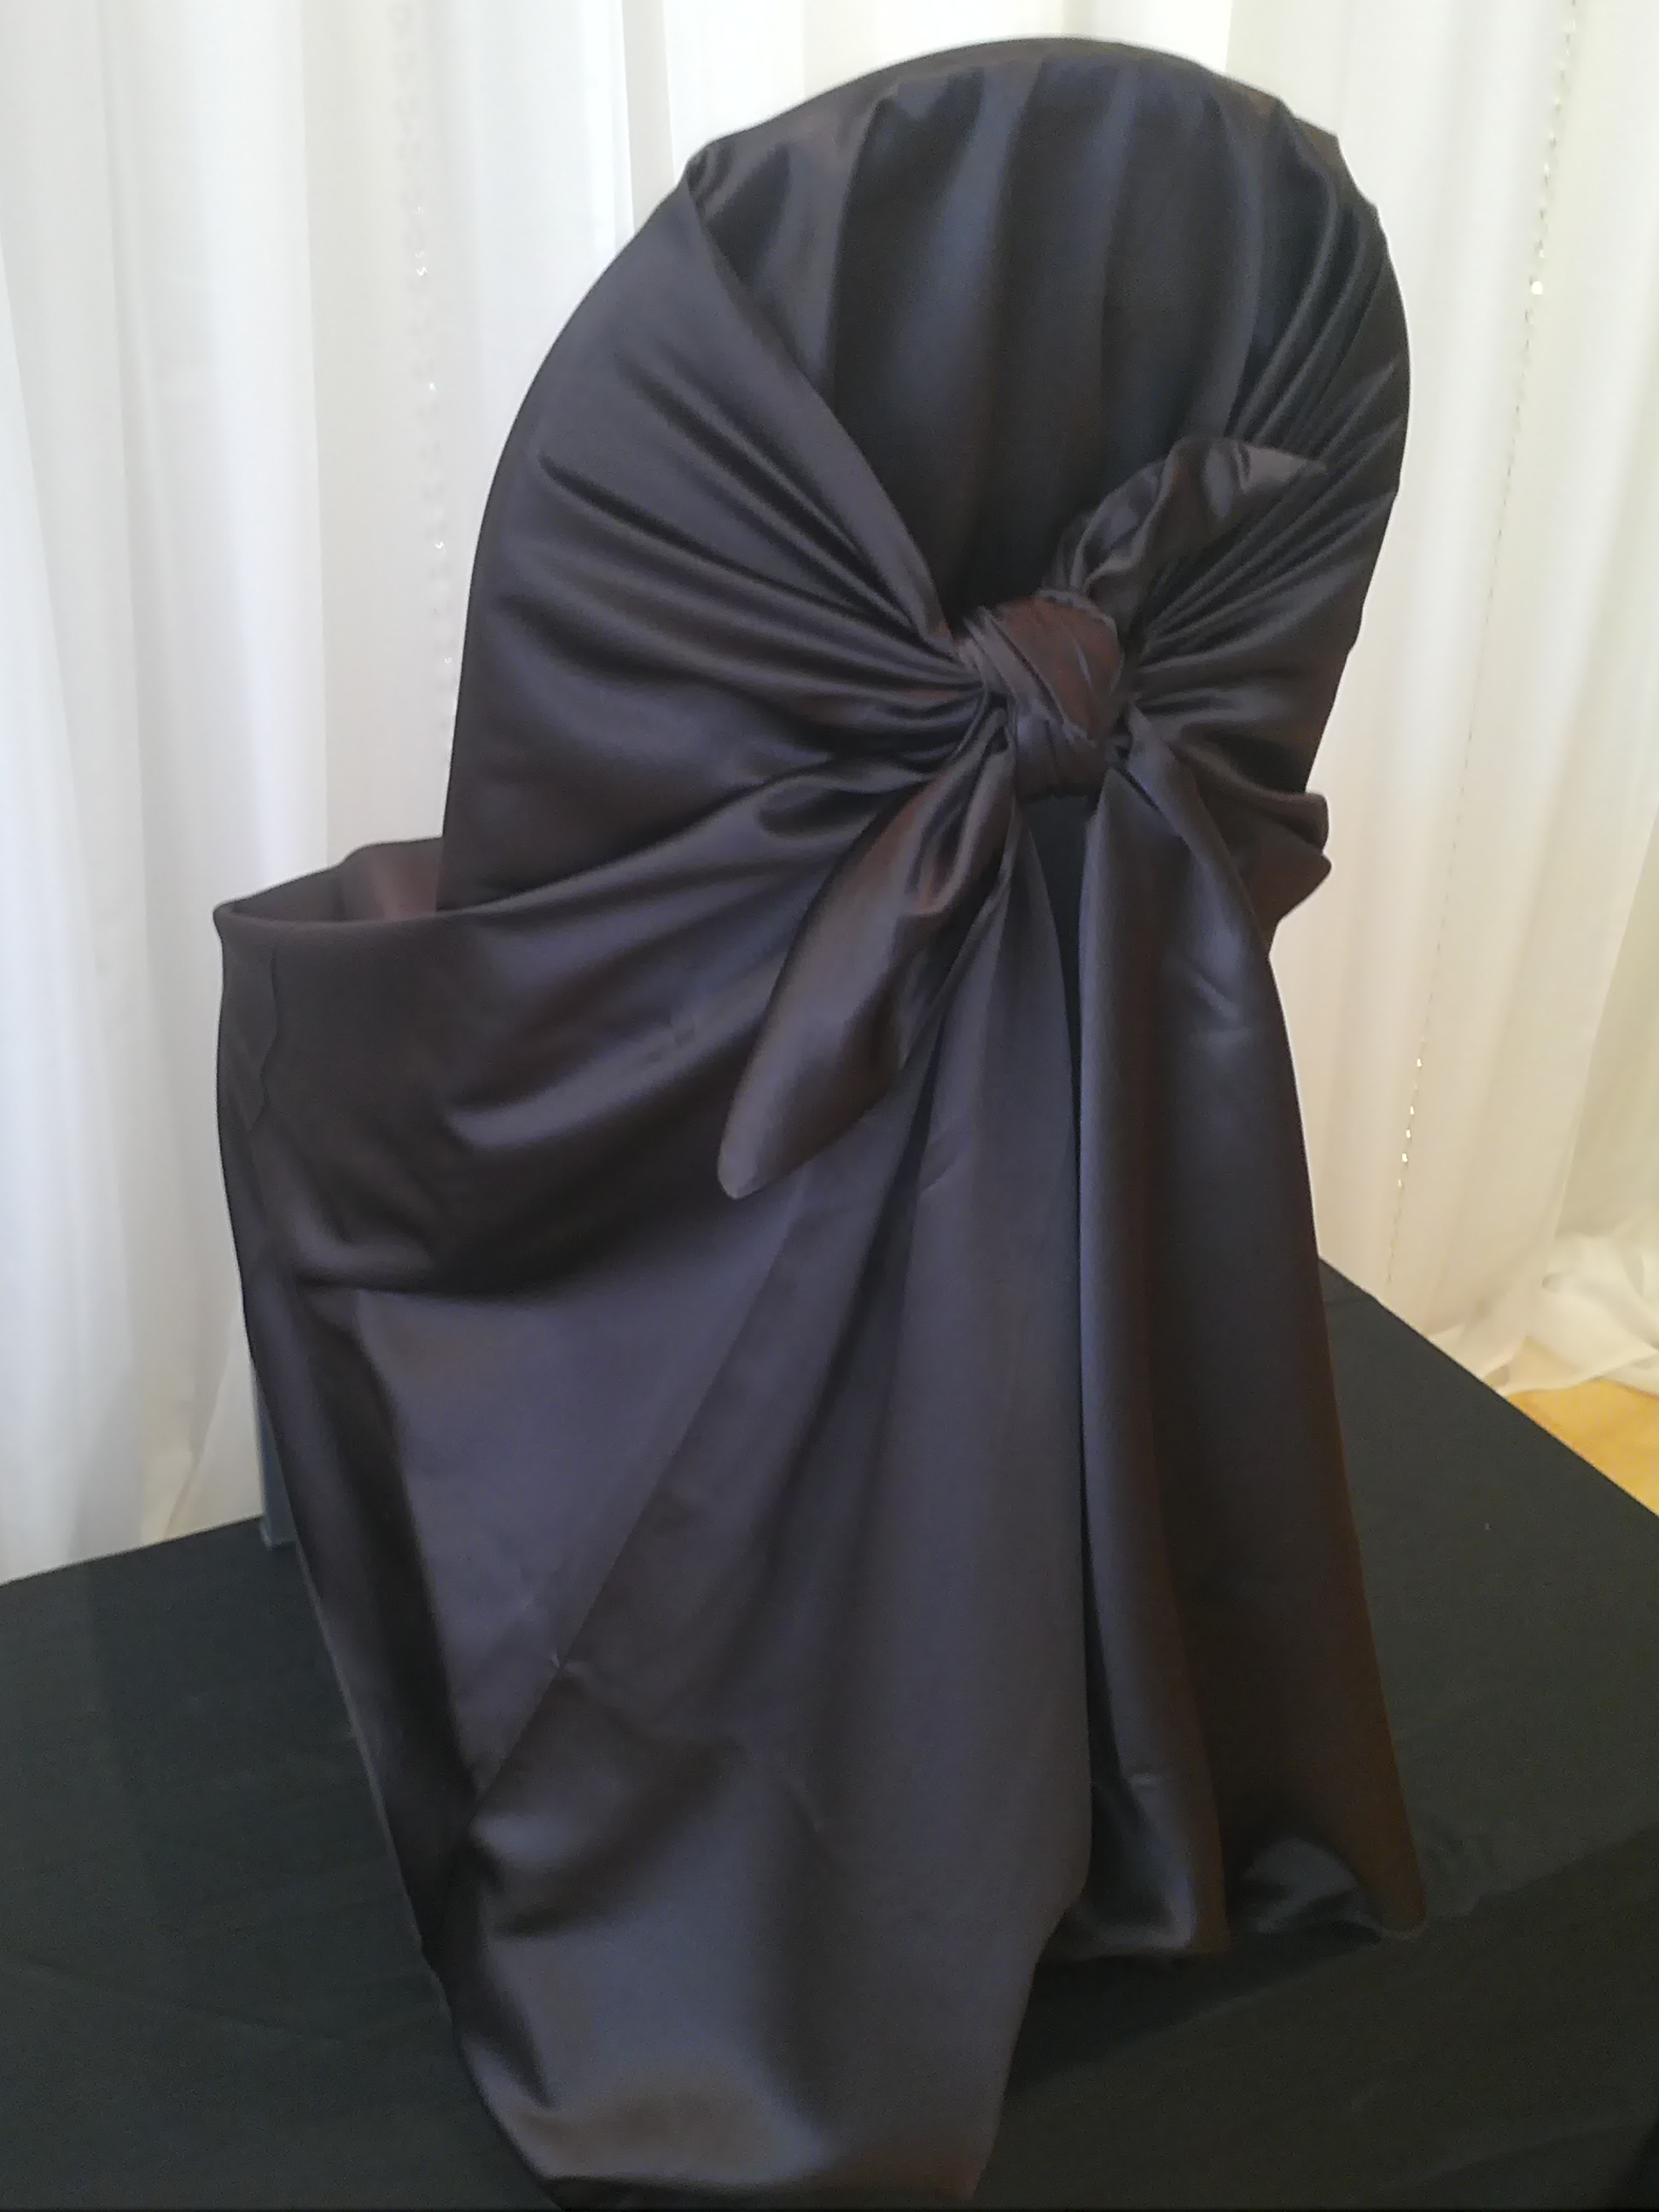 brown chair covers oversized folding with canopy decor  hug cover